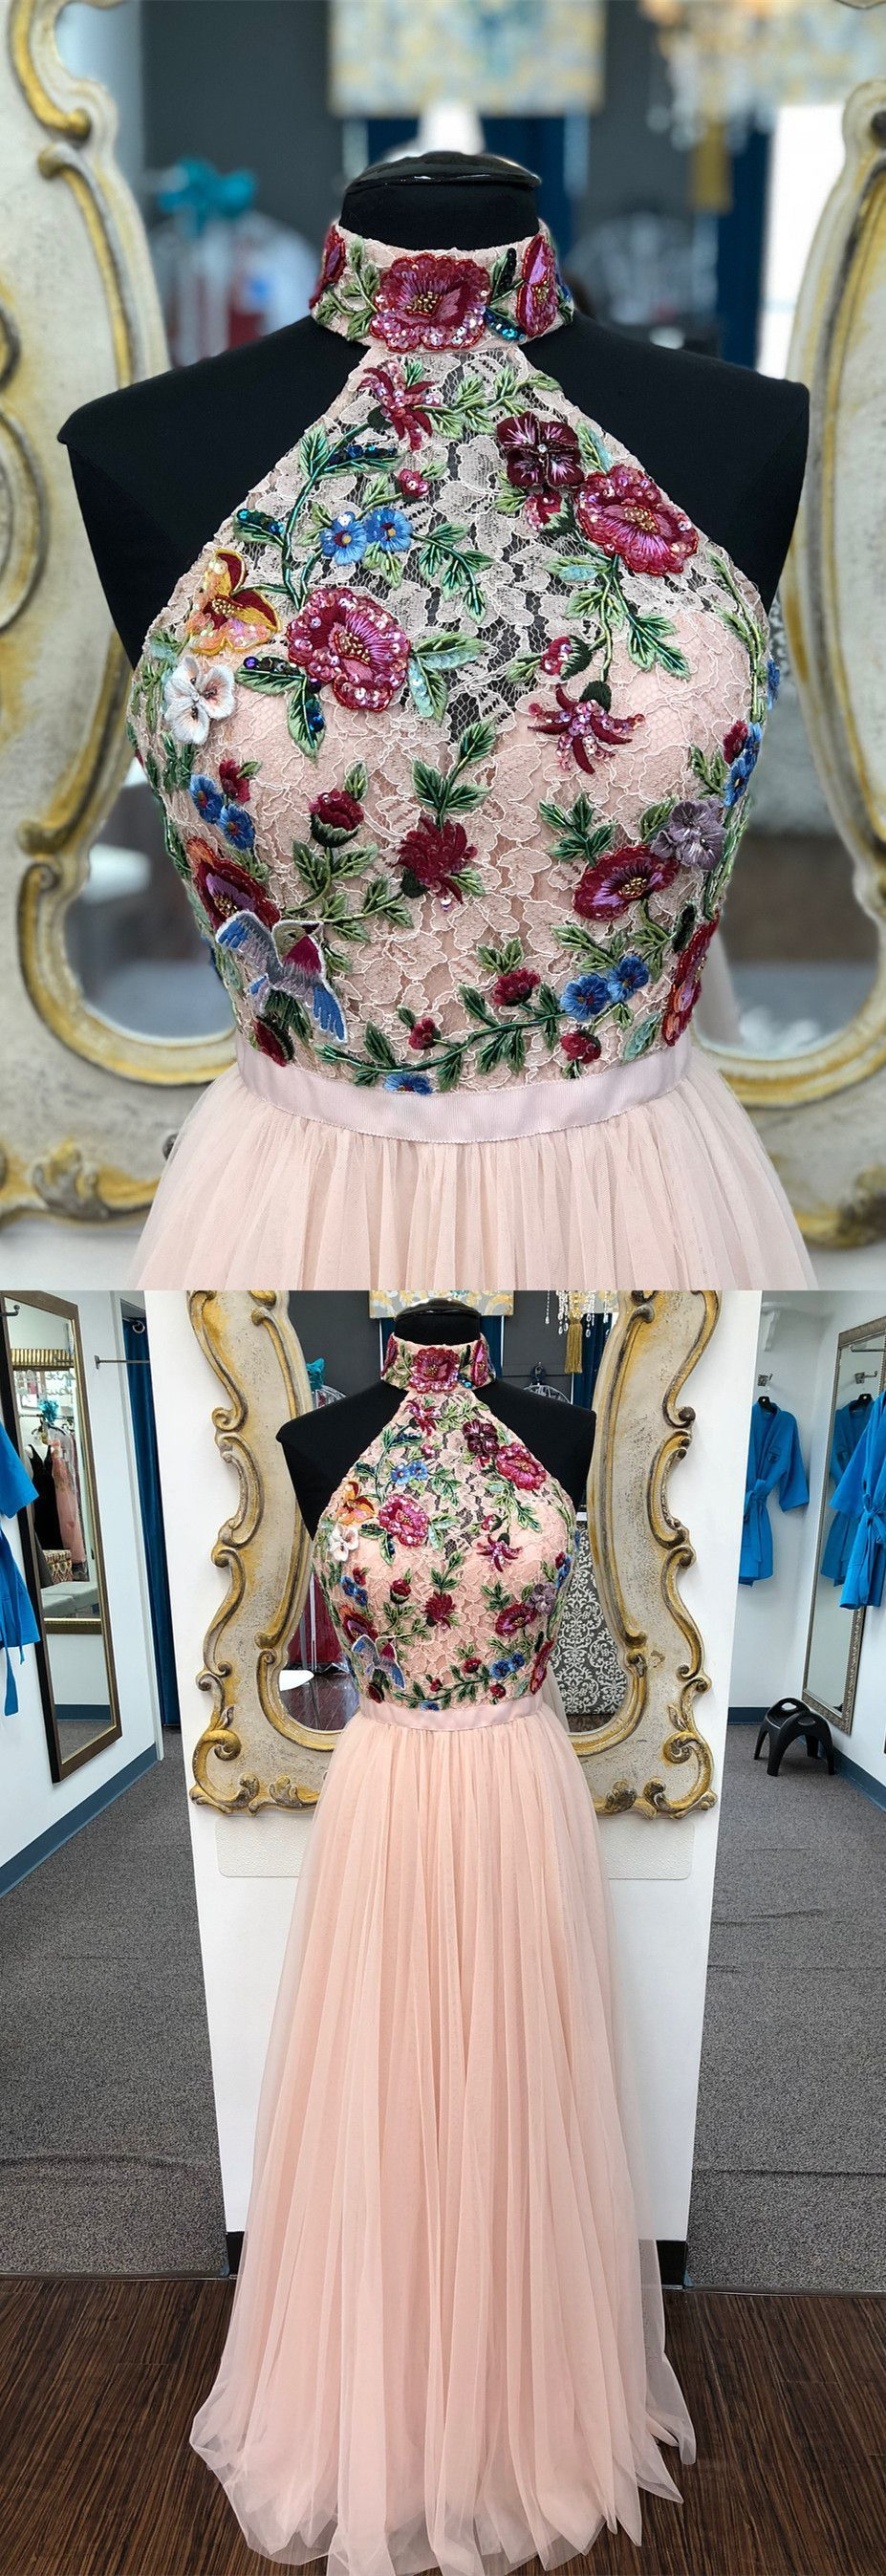 Elegant high neck pink long prom dress with floral embroidery prom